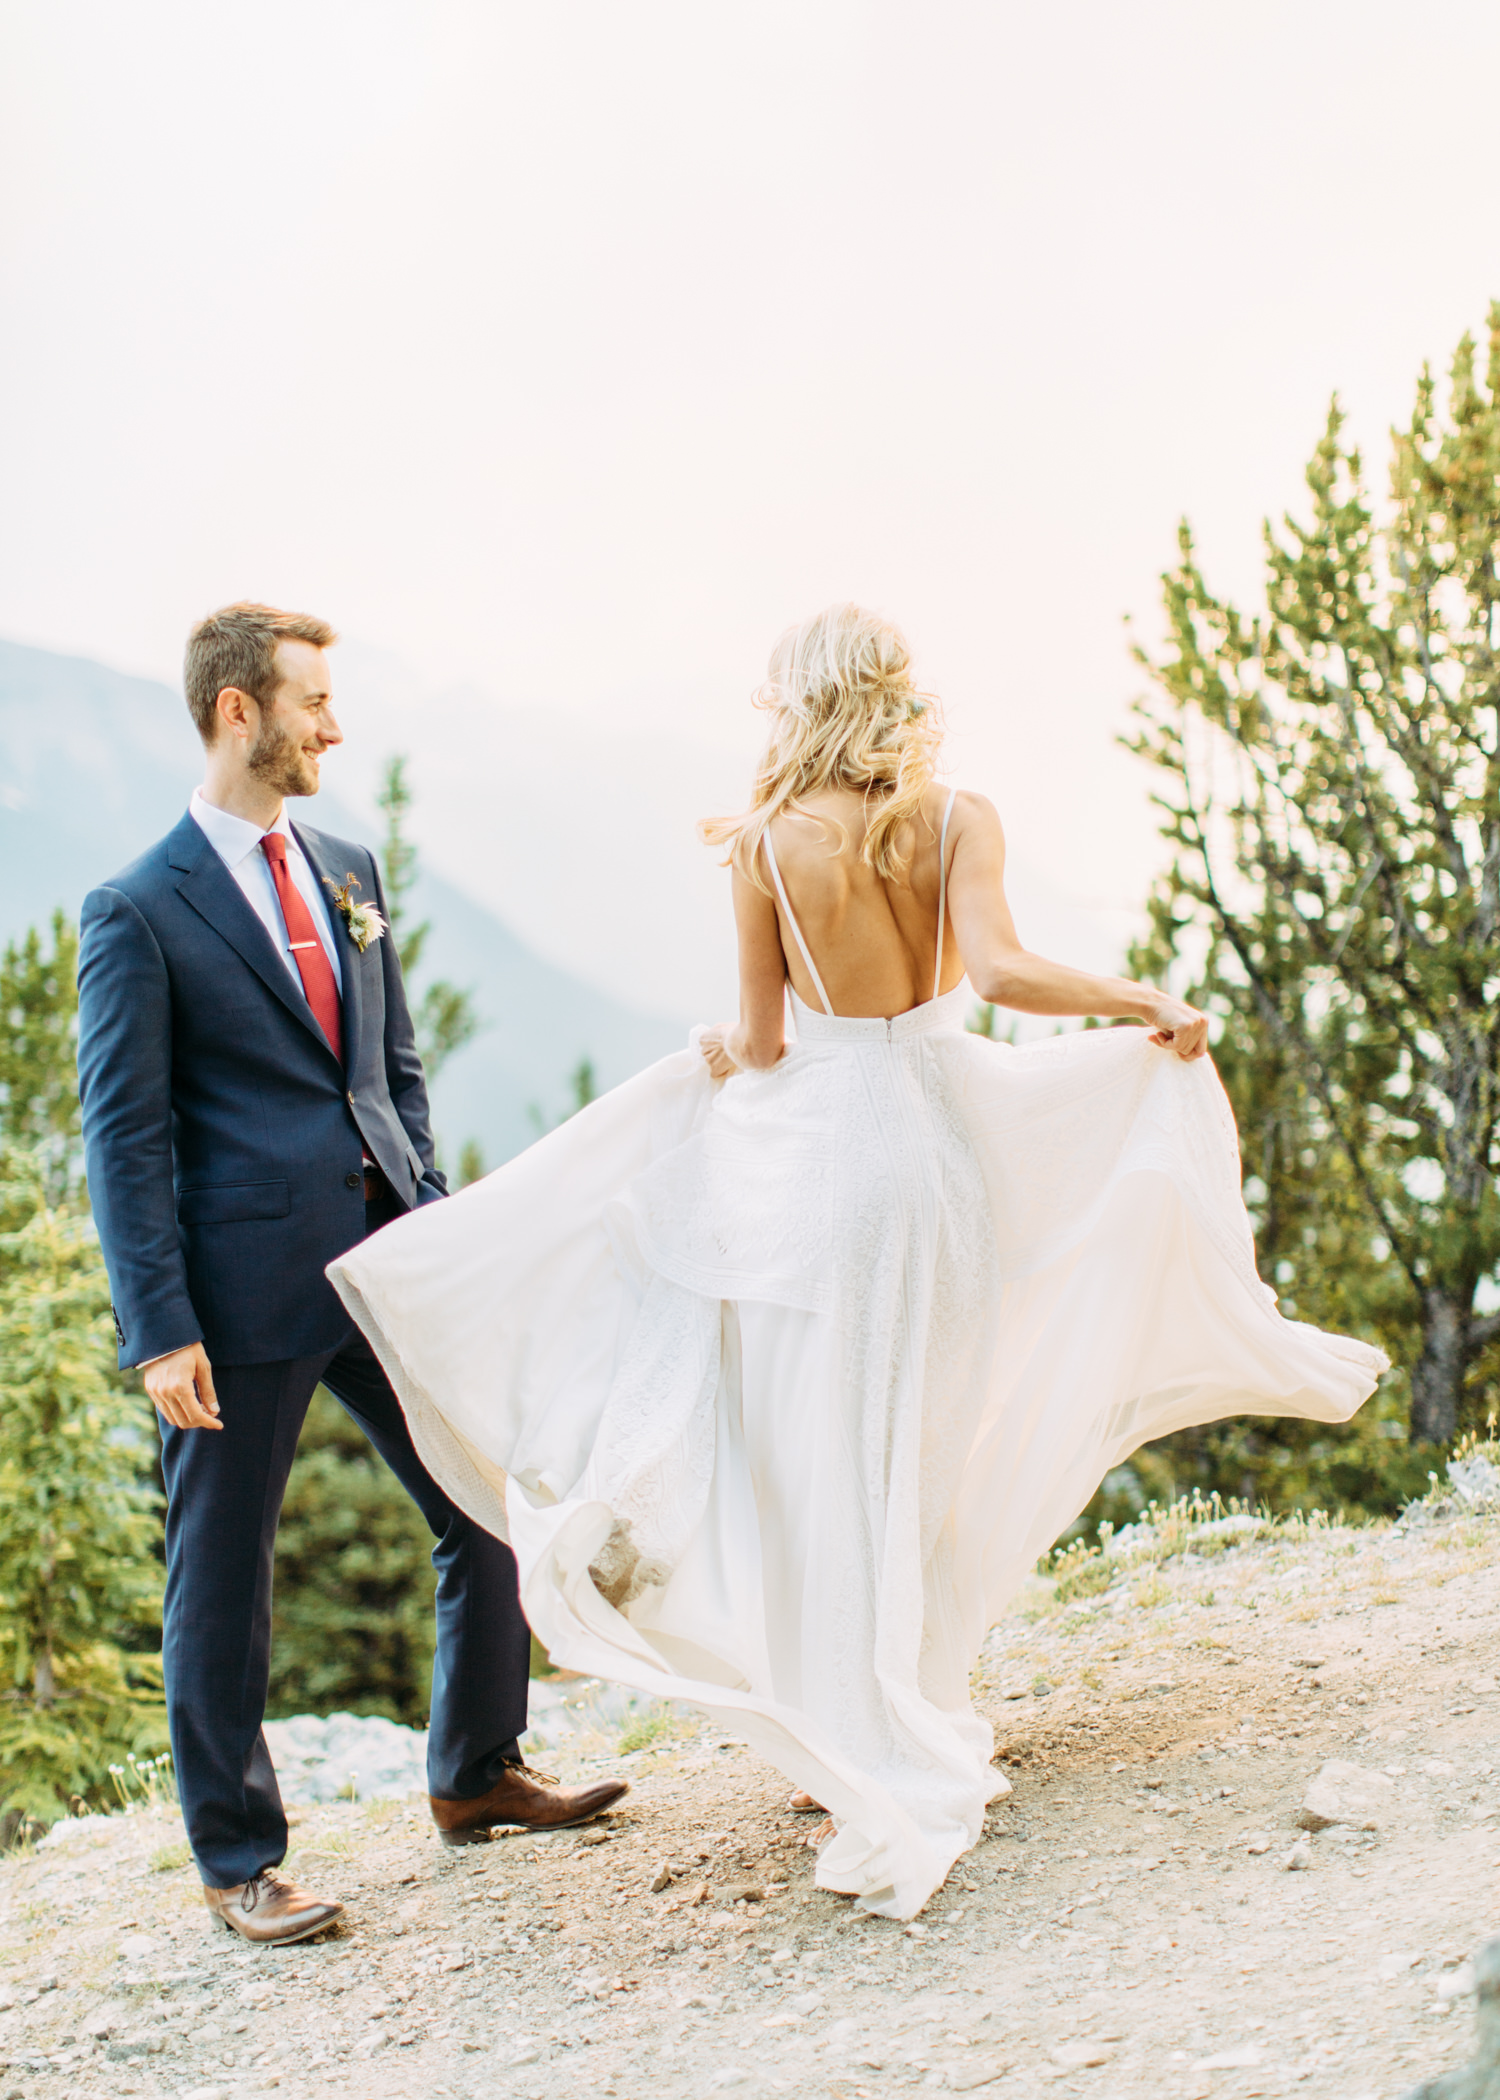 Unique wedding dress shots